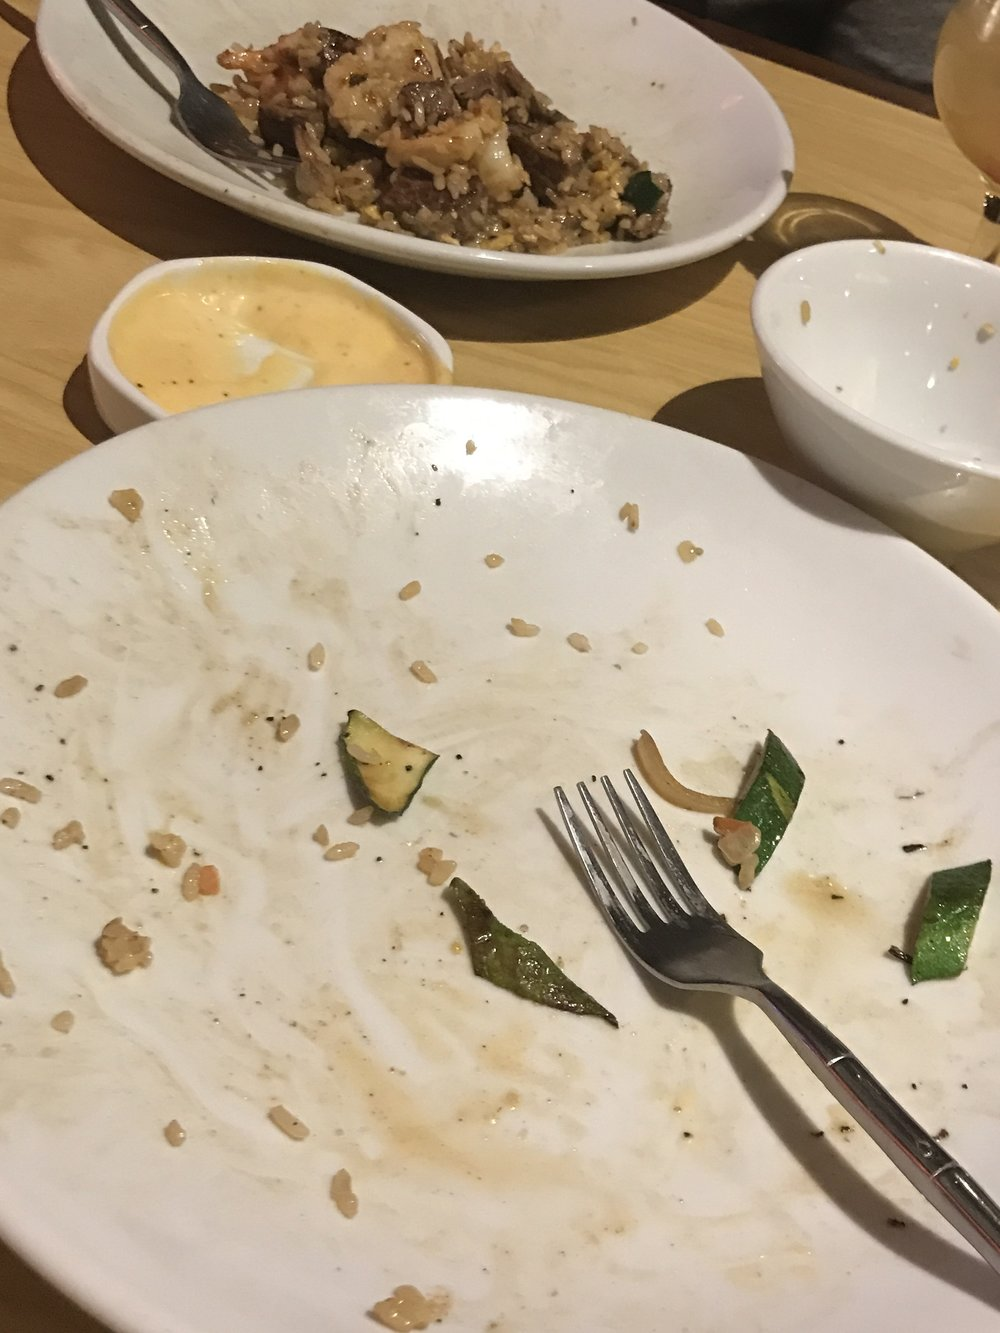 Guess which plate was mine...